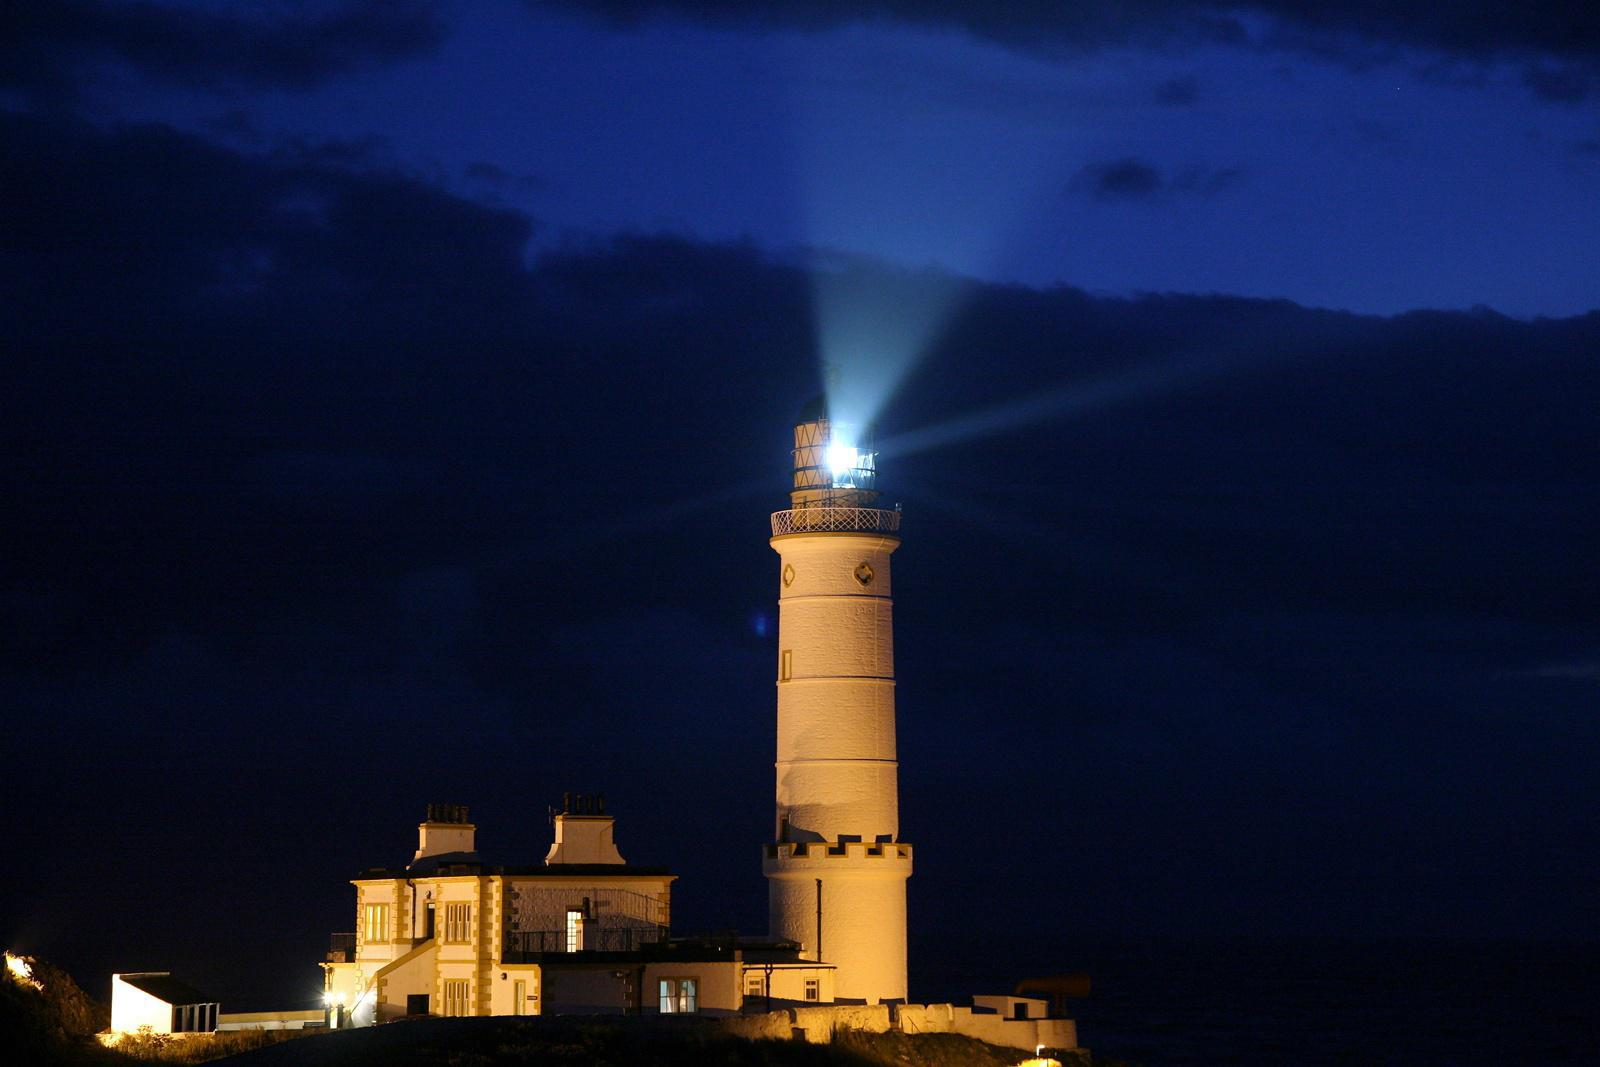 Unique Experiences: Sleep in a Lighthouse